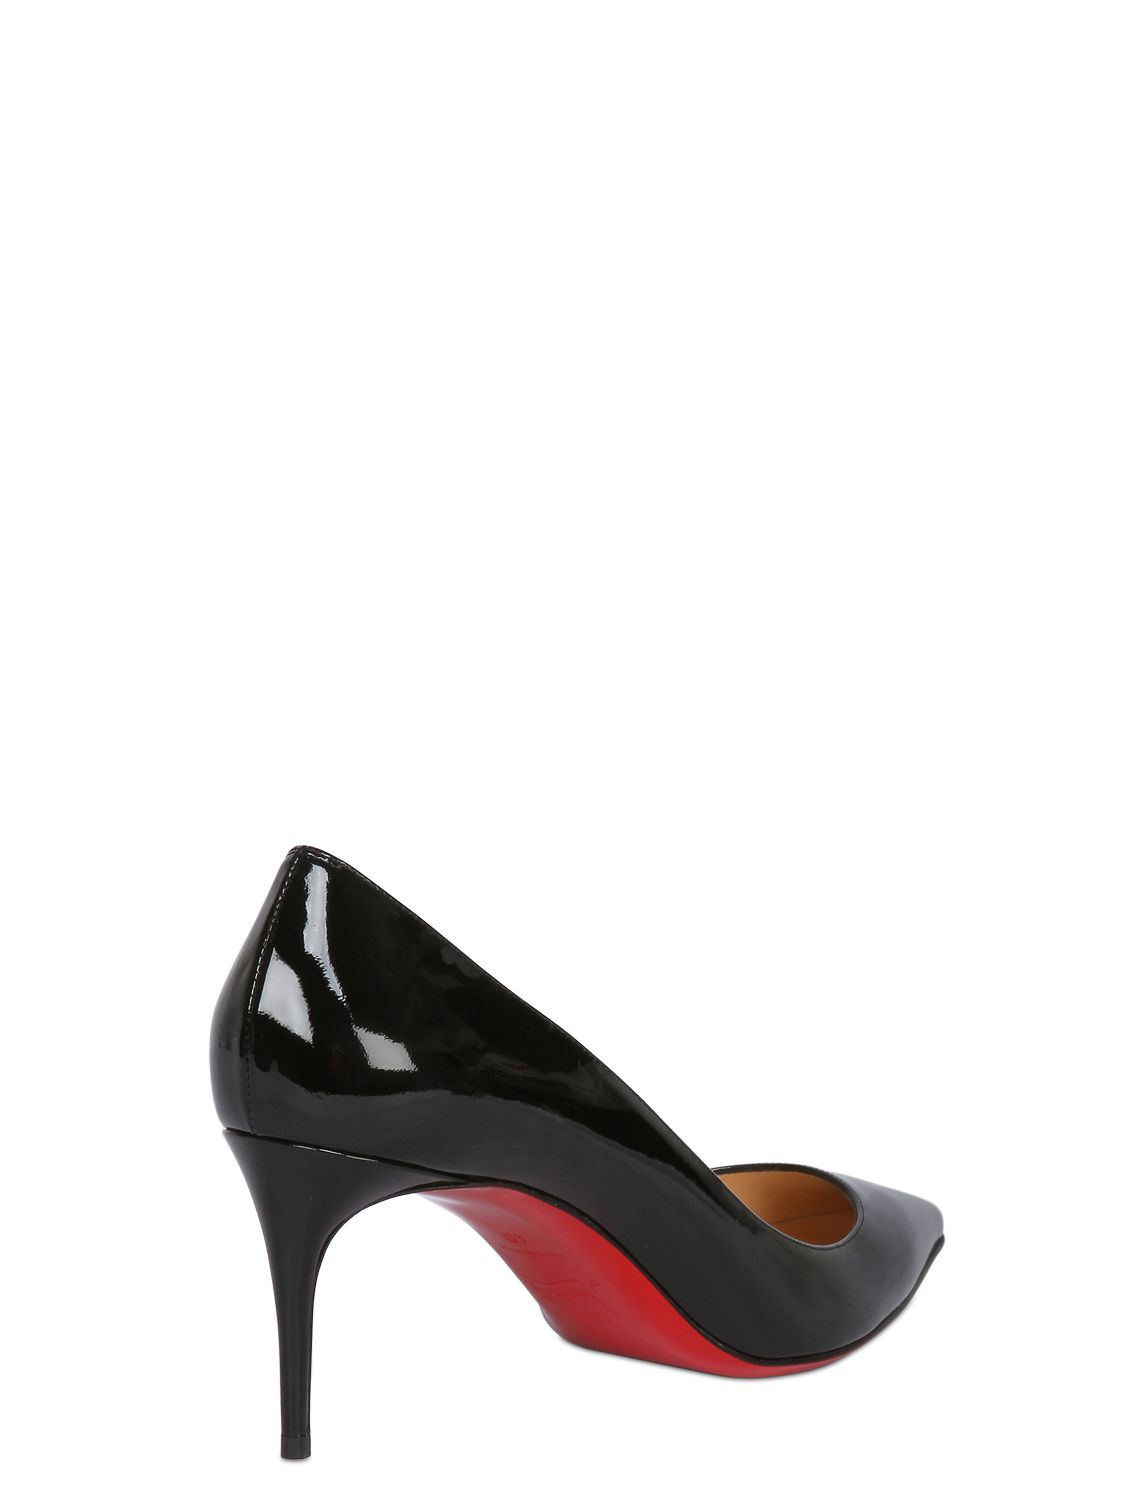 Christian louboutin 70mm Decollete 554 Patent Leather Pumps in ...